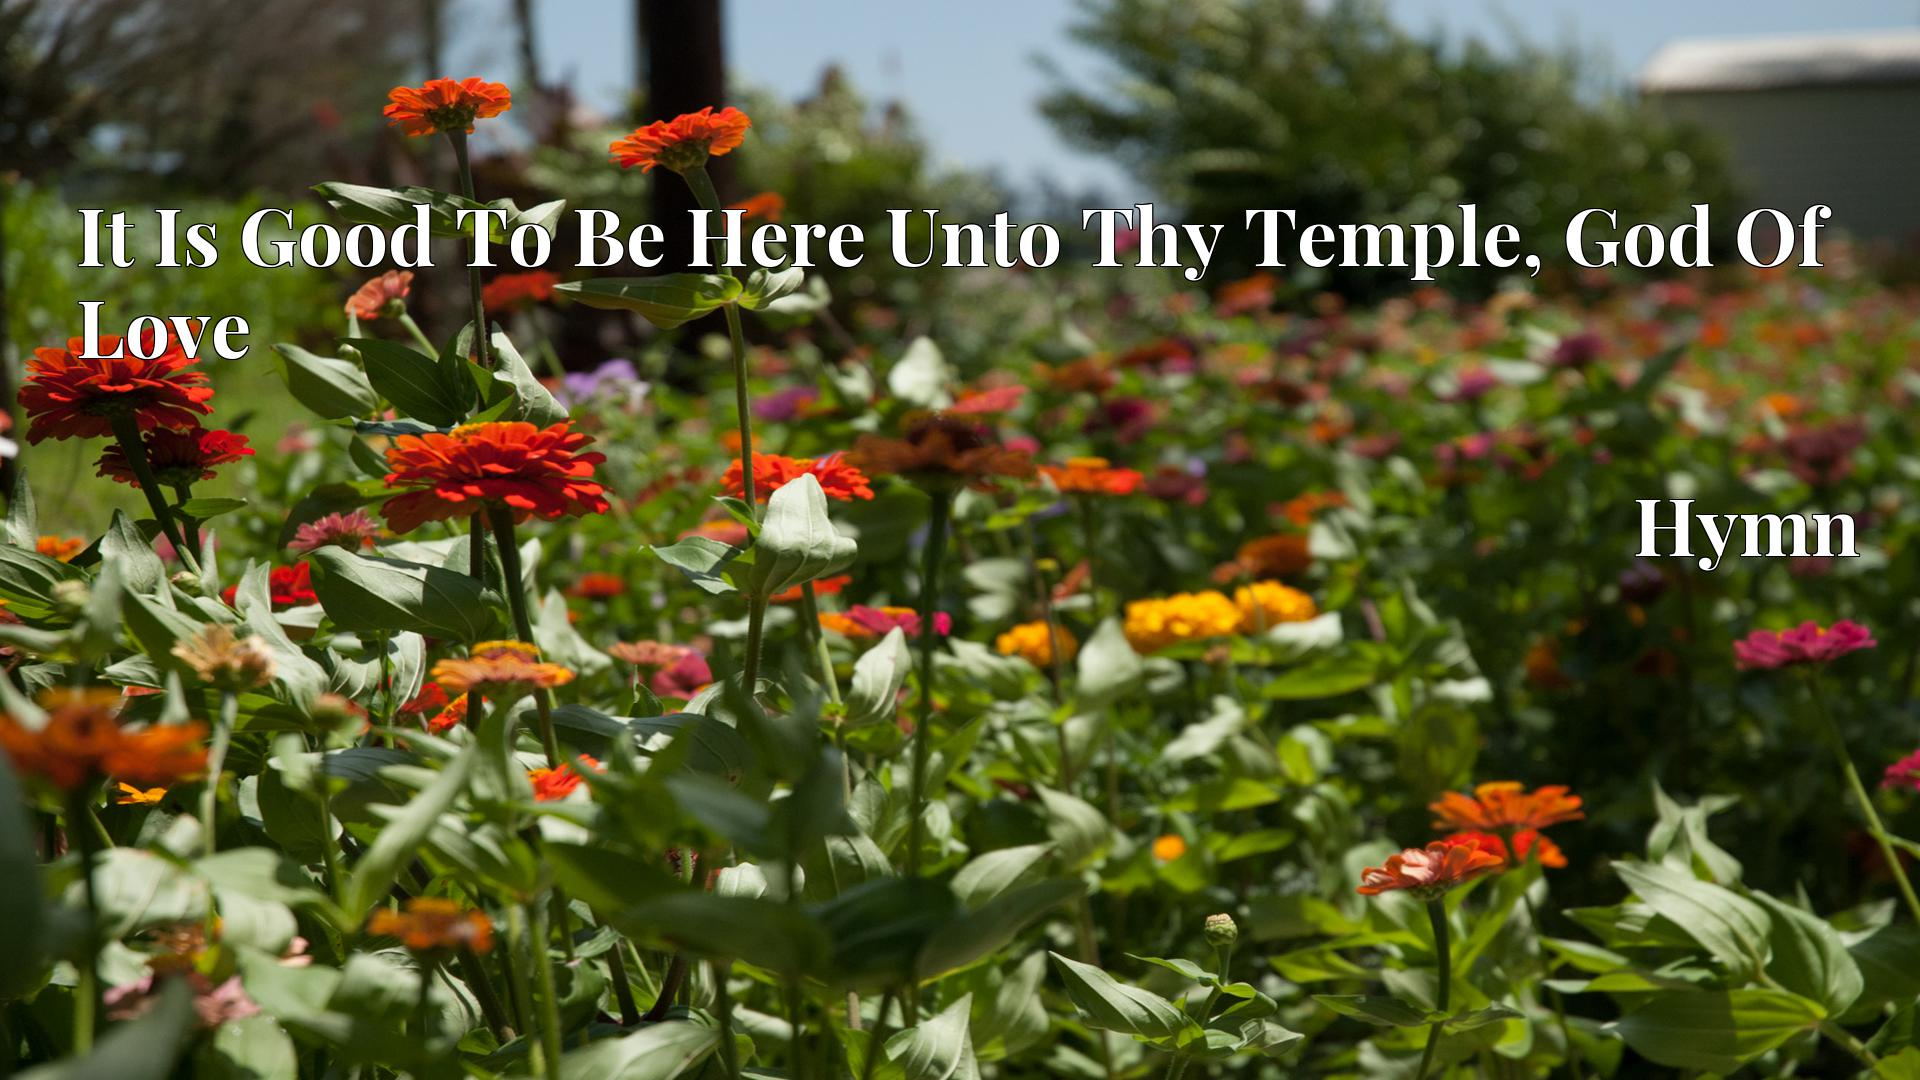 It Is Good To Be Here Unto Thy Temple, God Of Love Hymn